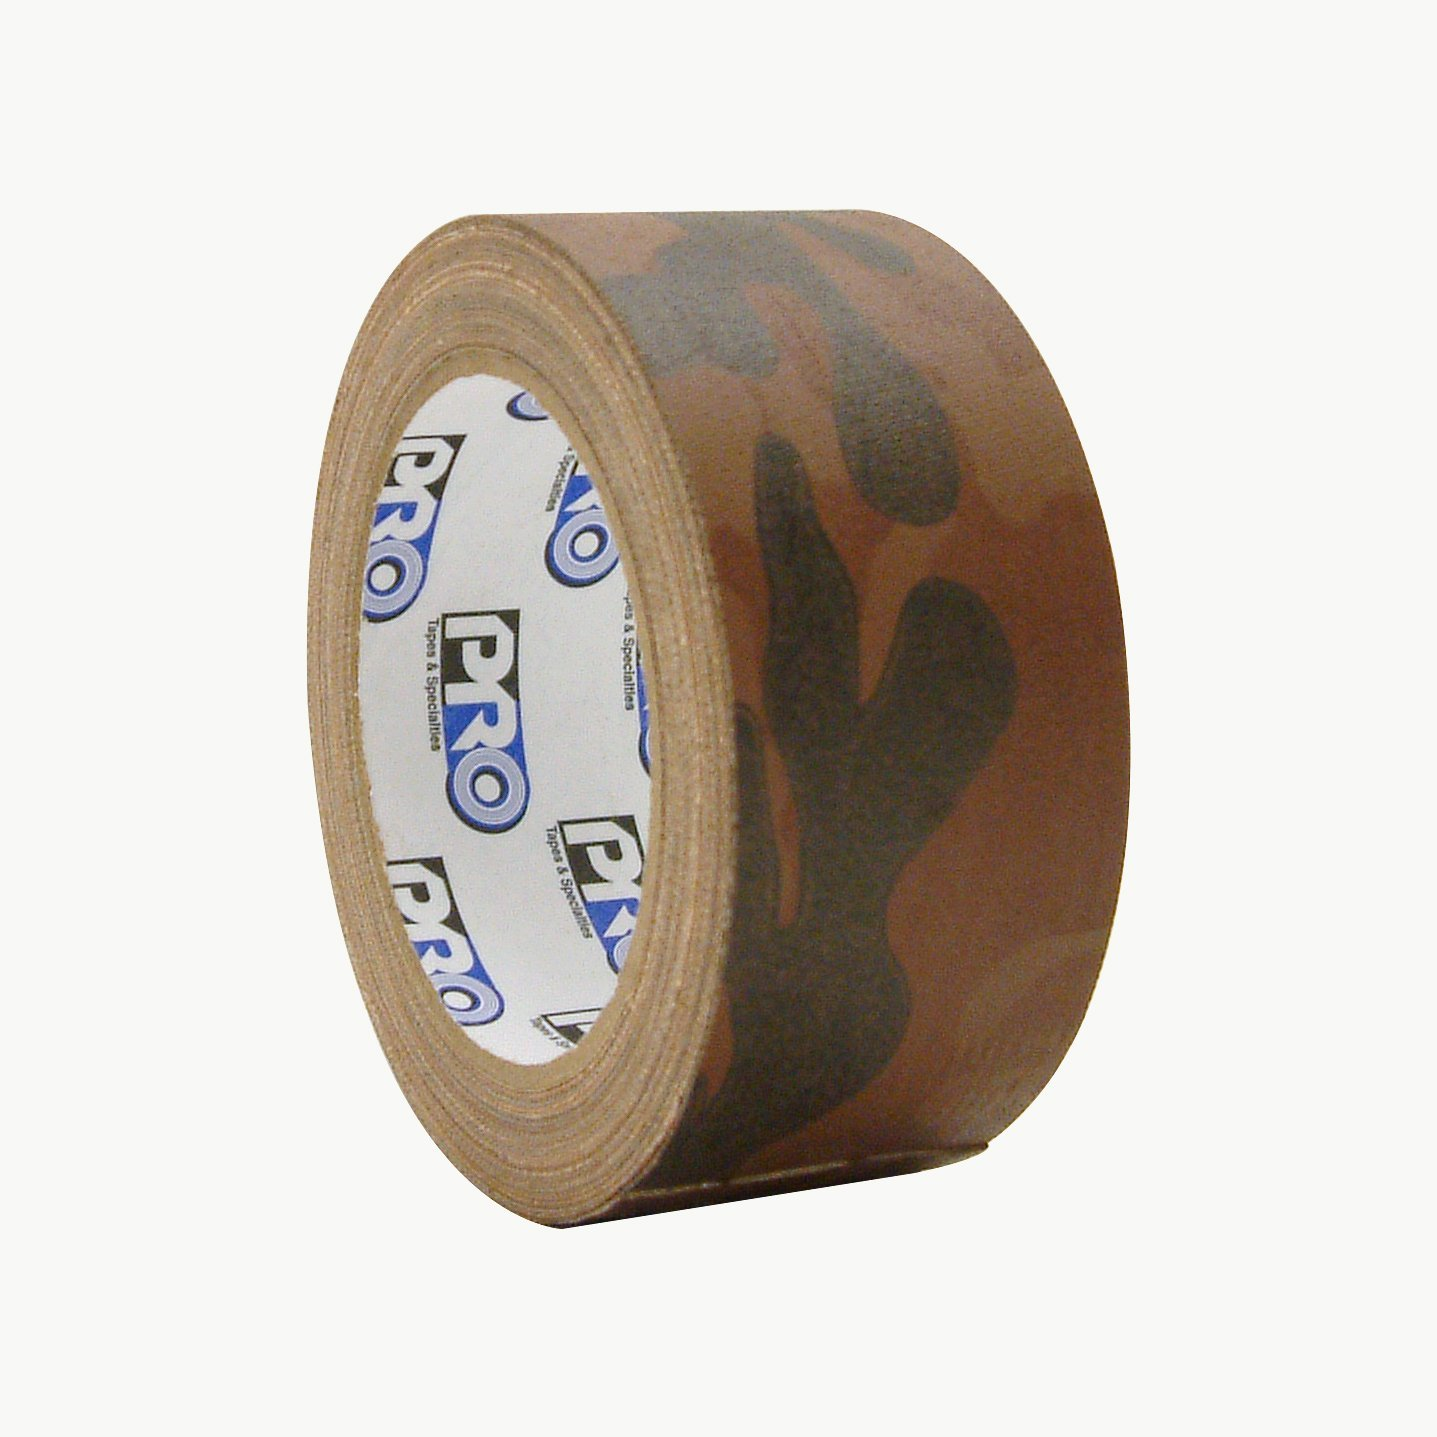 Pro-Camo Camouflage Gaffers Tape: 2 in. x 60 ft. (Dark De...